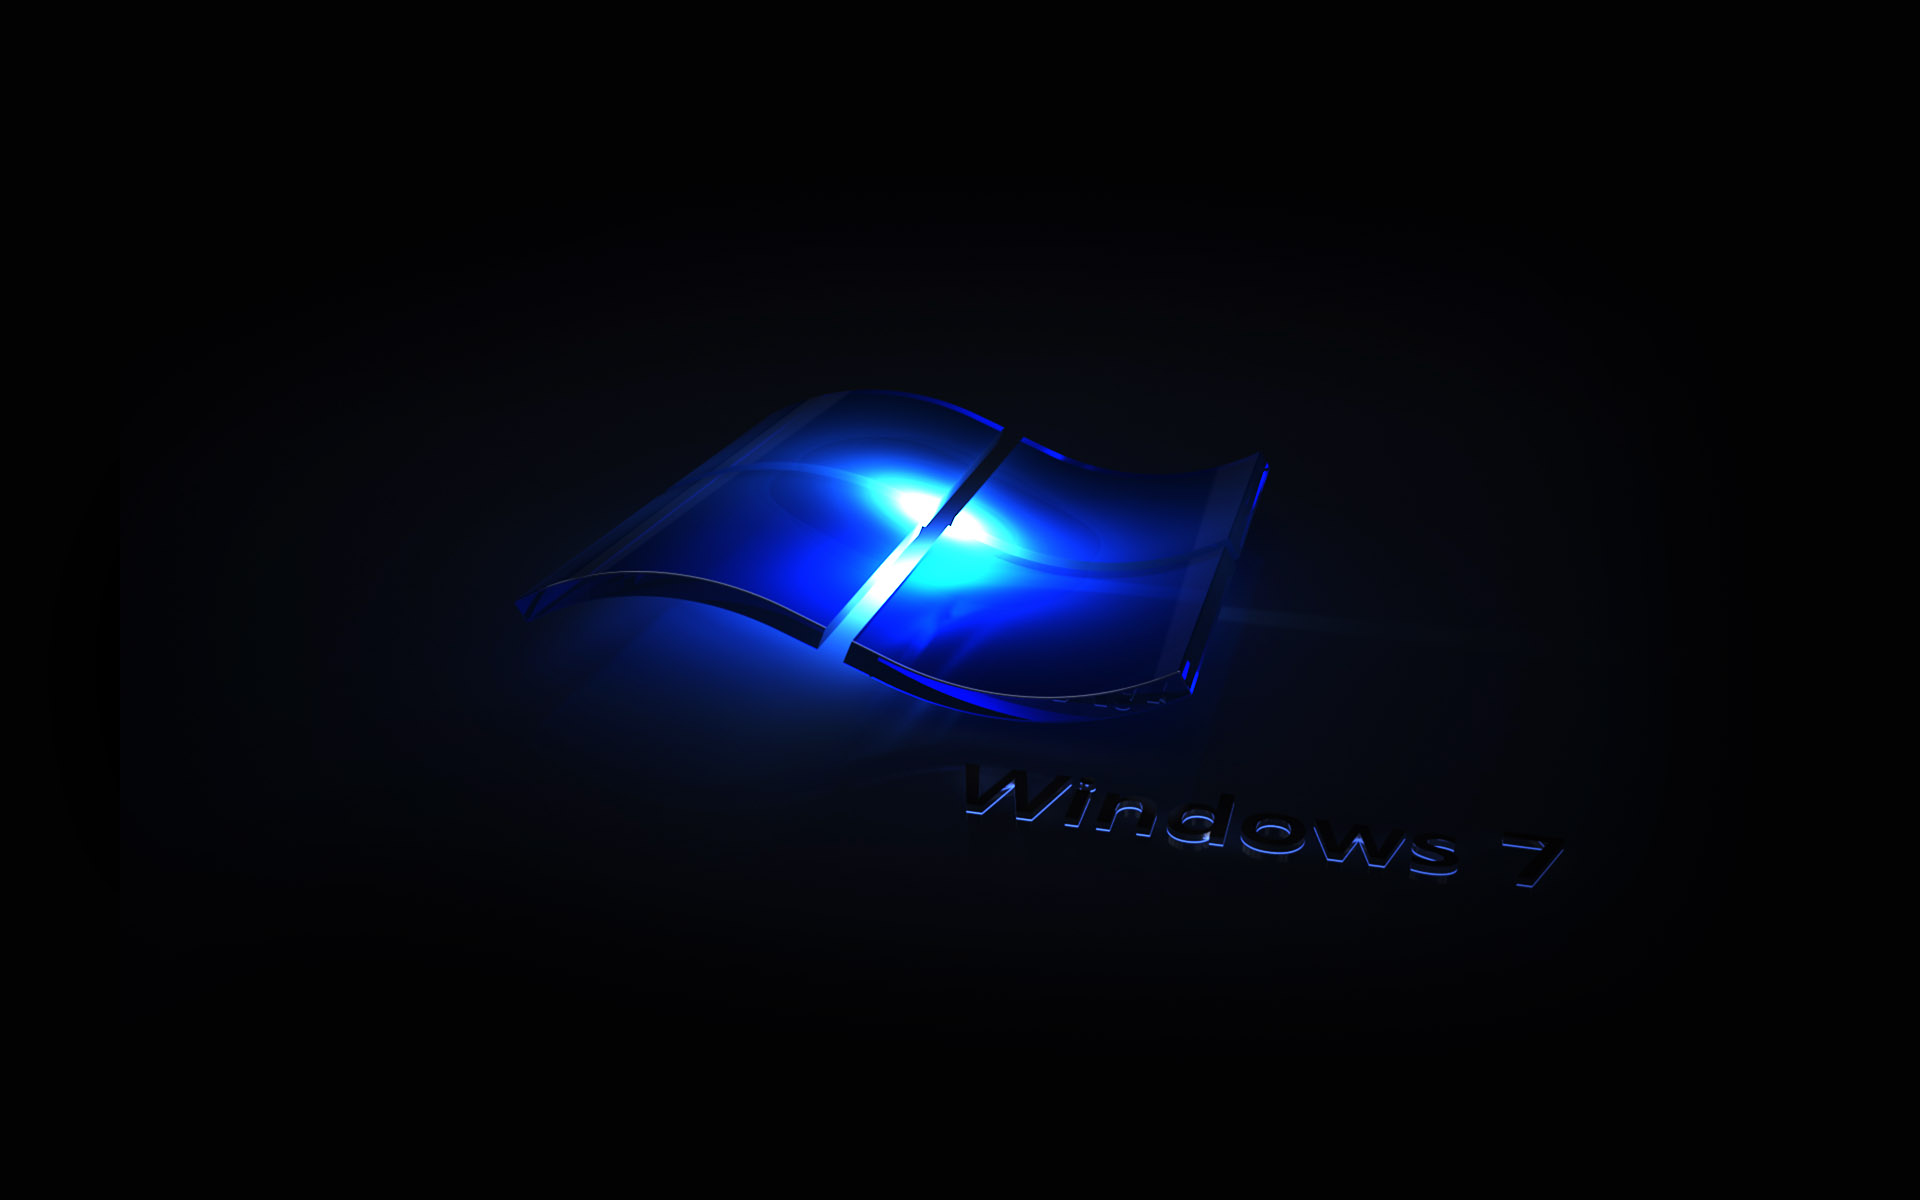 Windows 7 Blue Neon Wallpaper Background Wallpapers HD 1920x1200